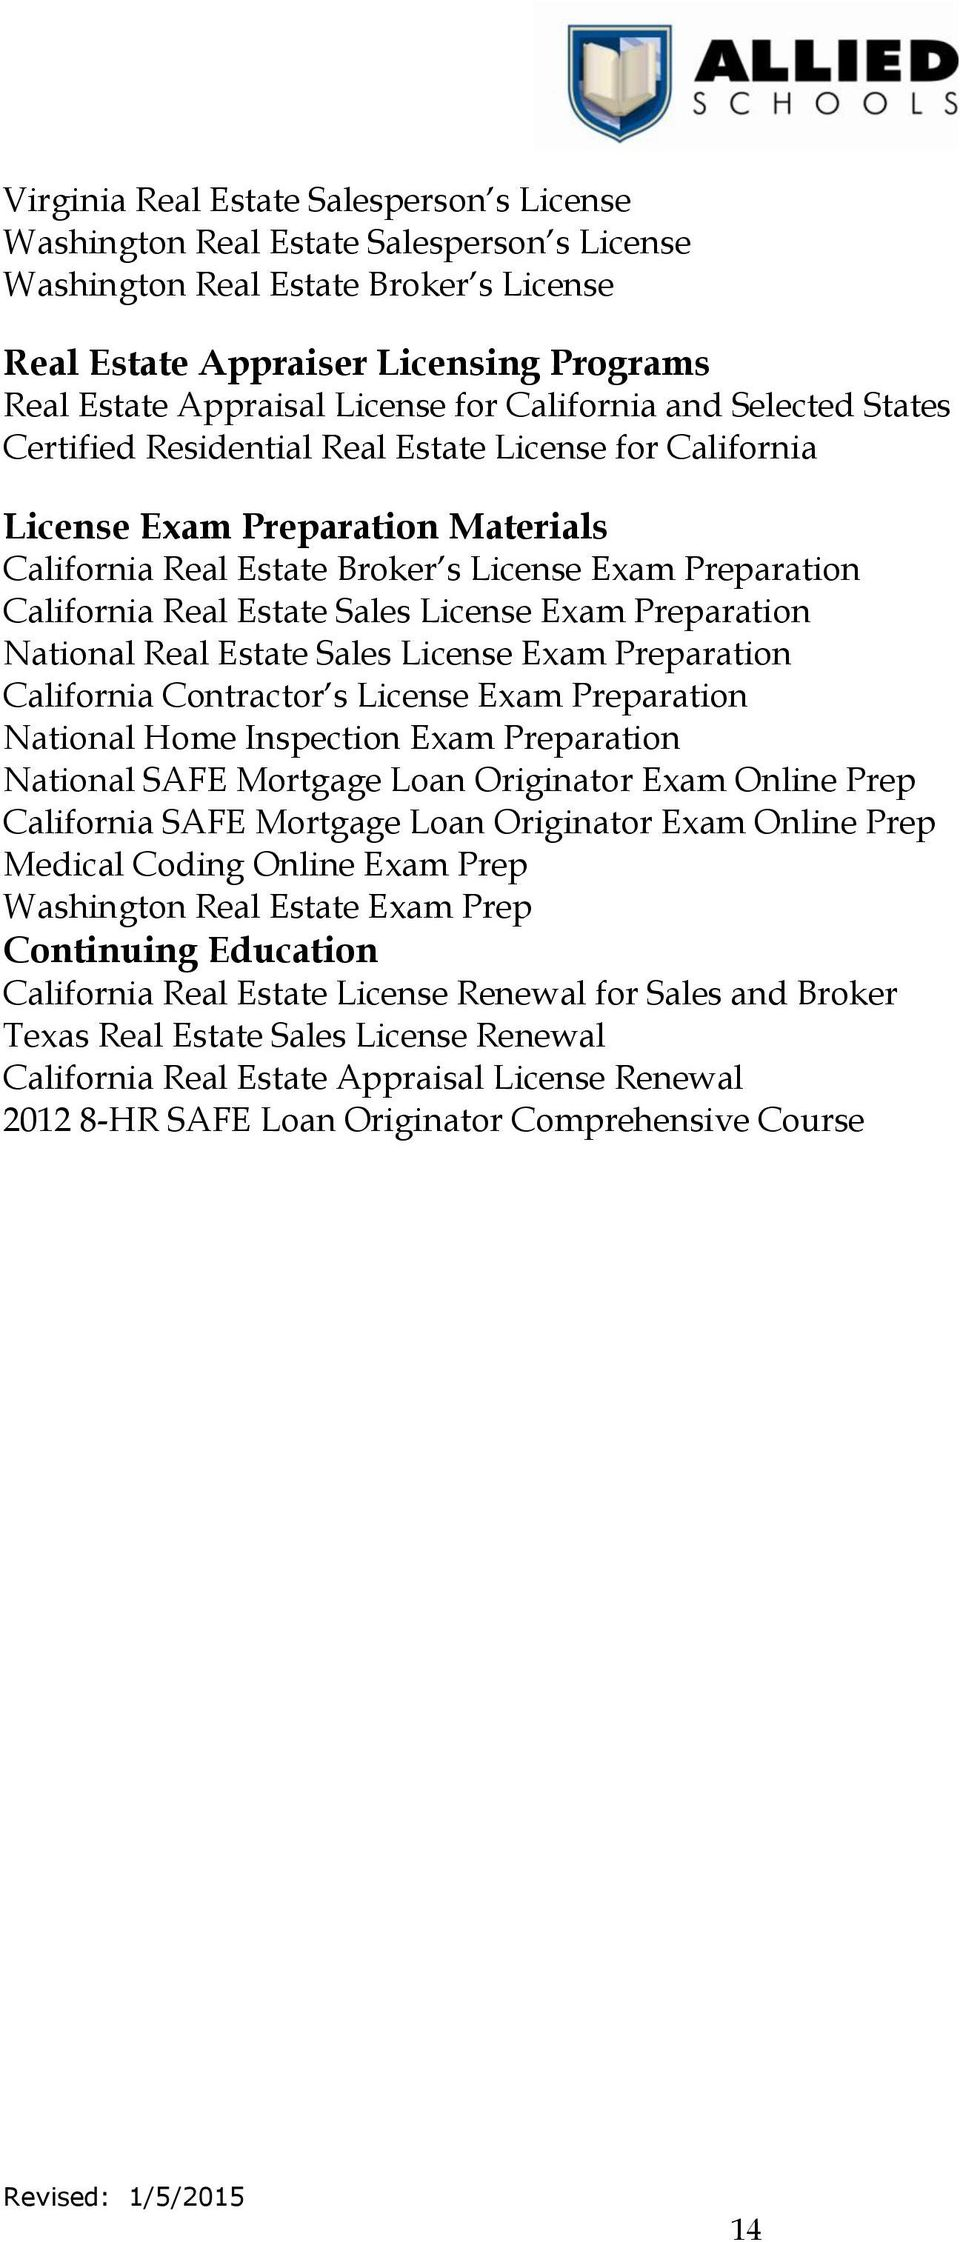 Estate Sales License Exam Preparation National Real Estate Sales License Exam Preparation California Contractor s License Exam Preparation National Home Inspection Exam Preparation National SAFE